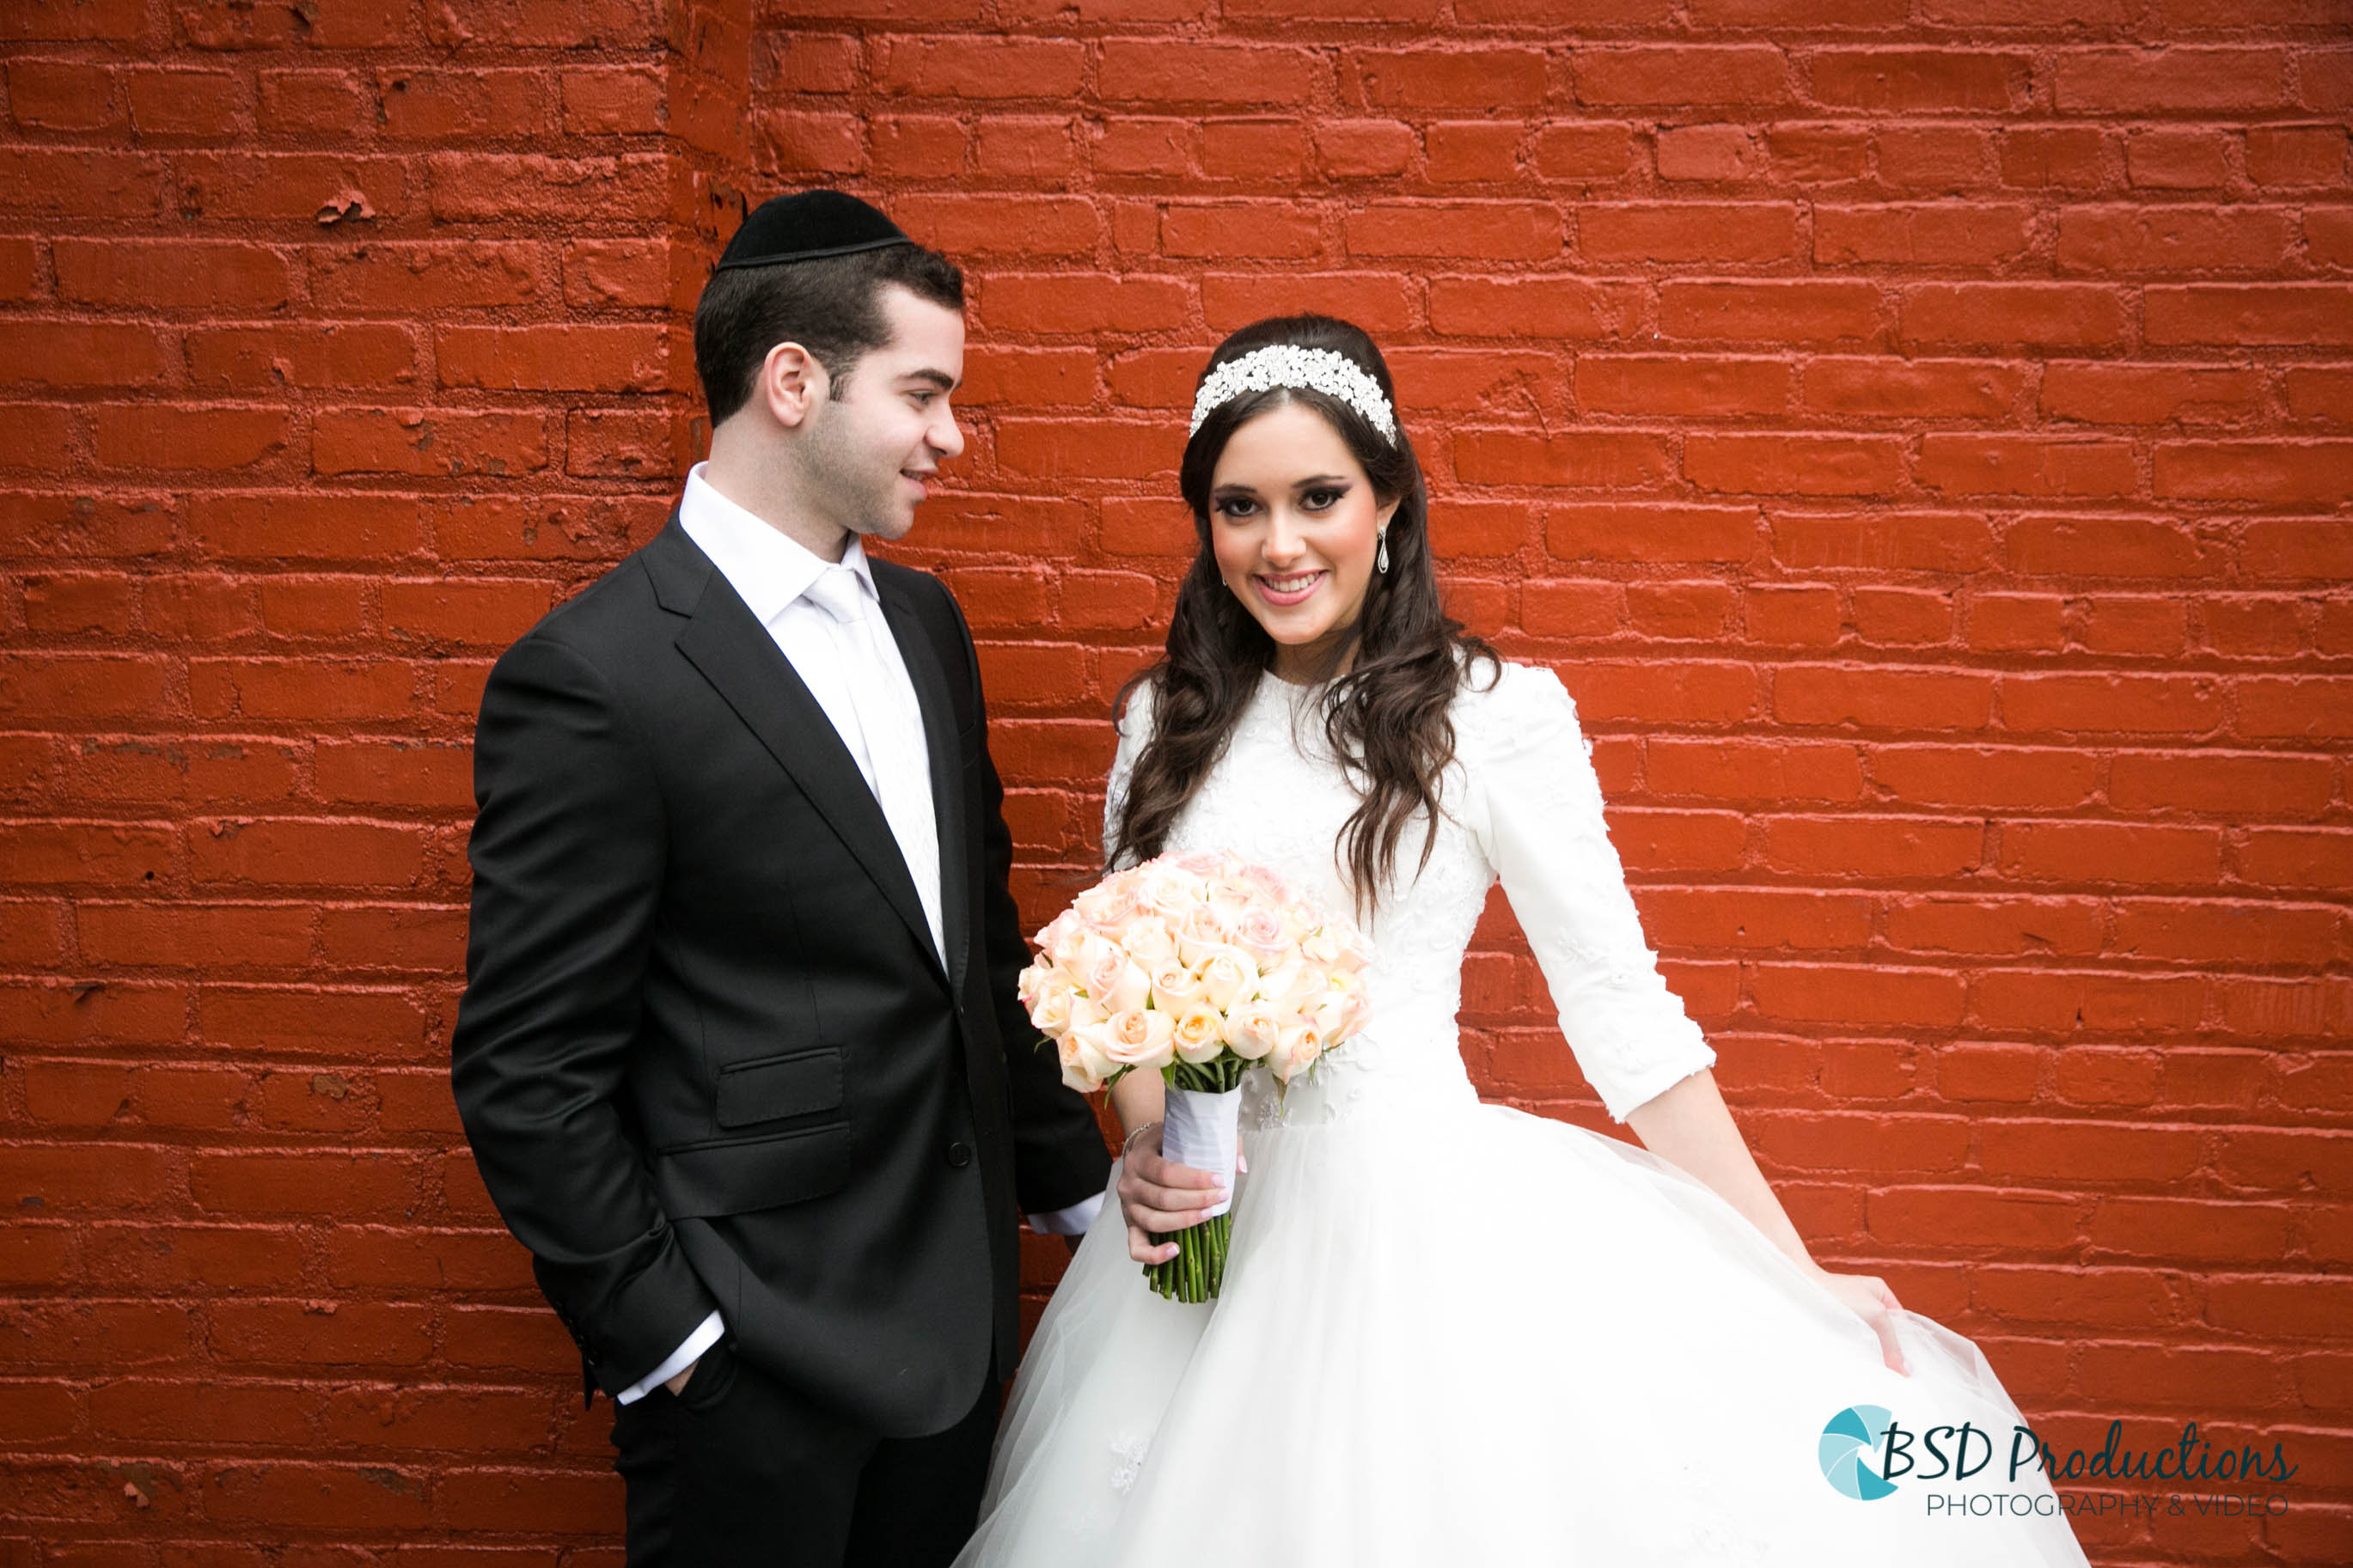 UH5A0368 Wedding – BSD Productions Photography